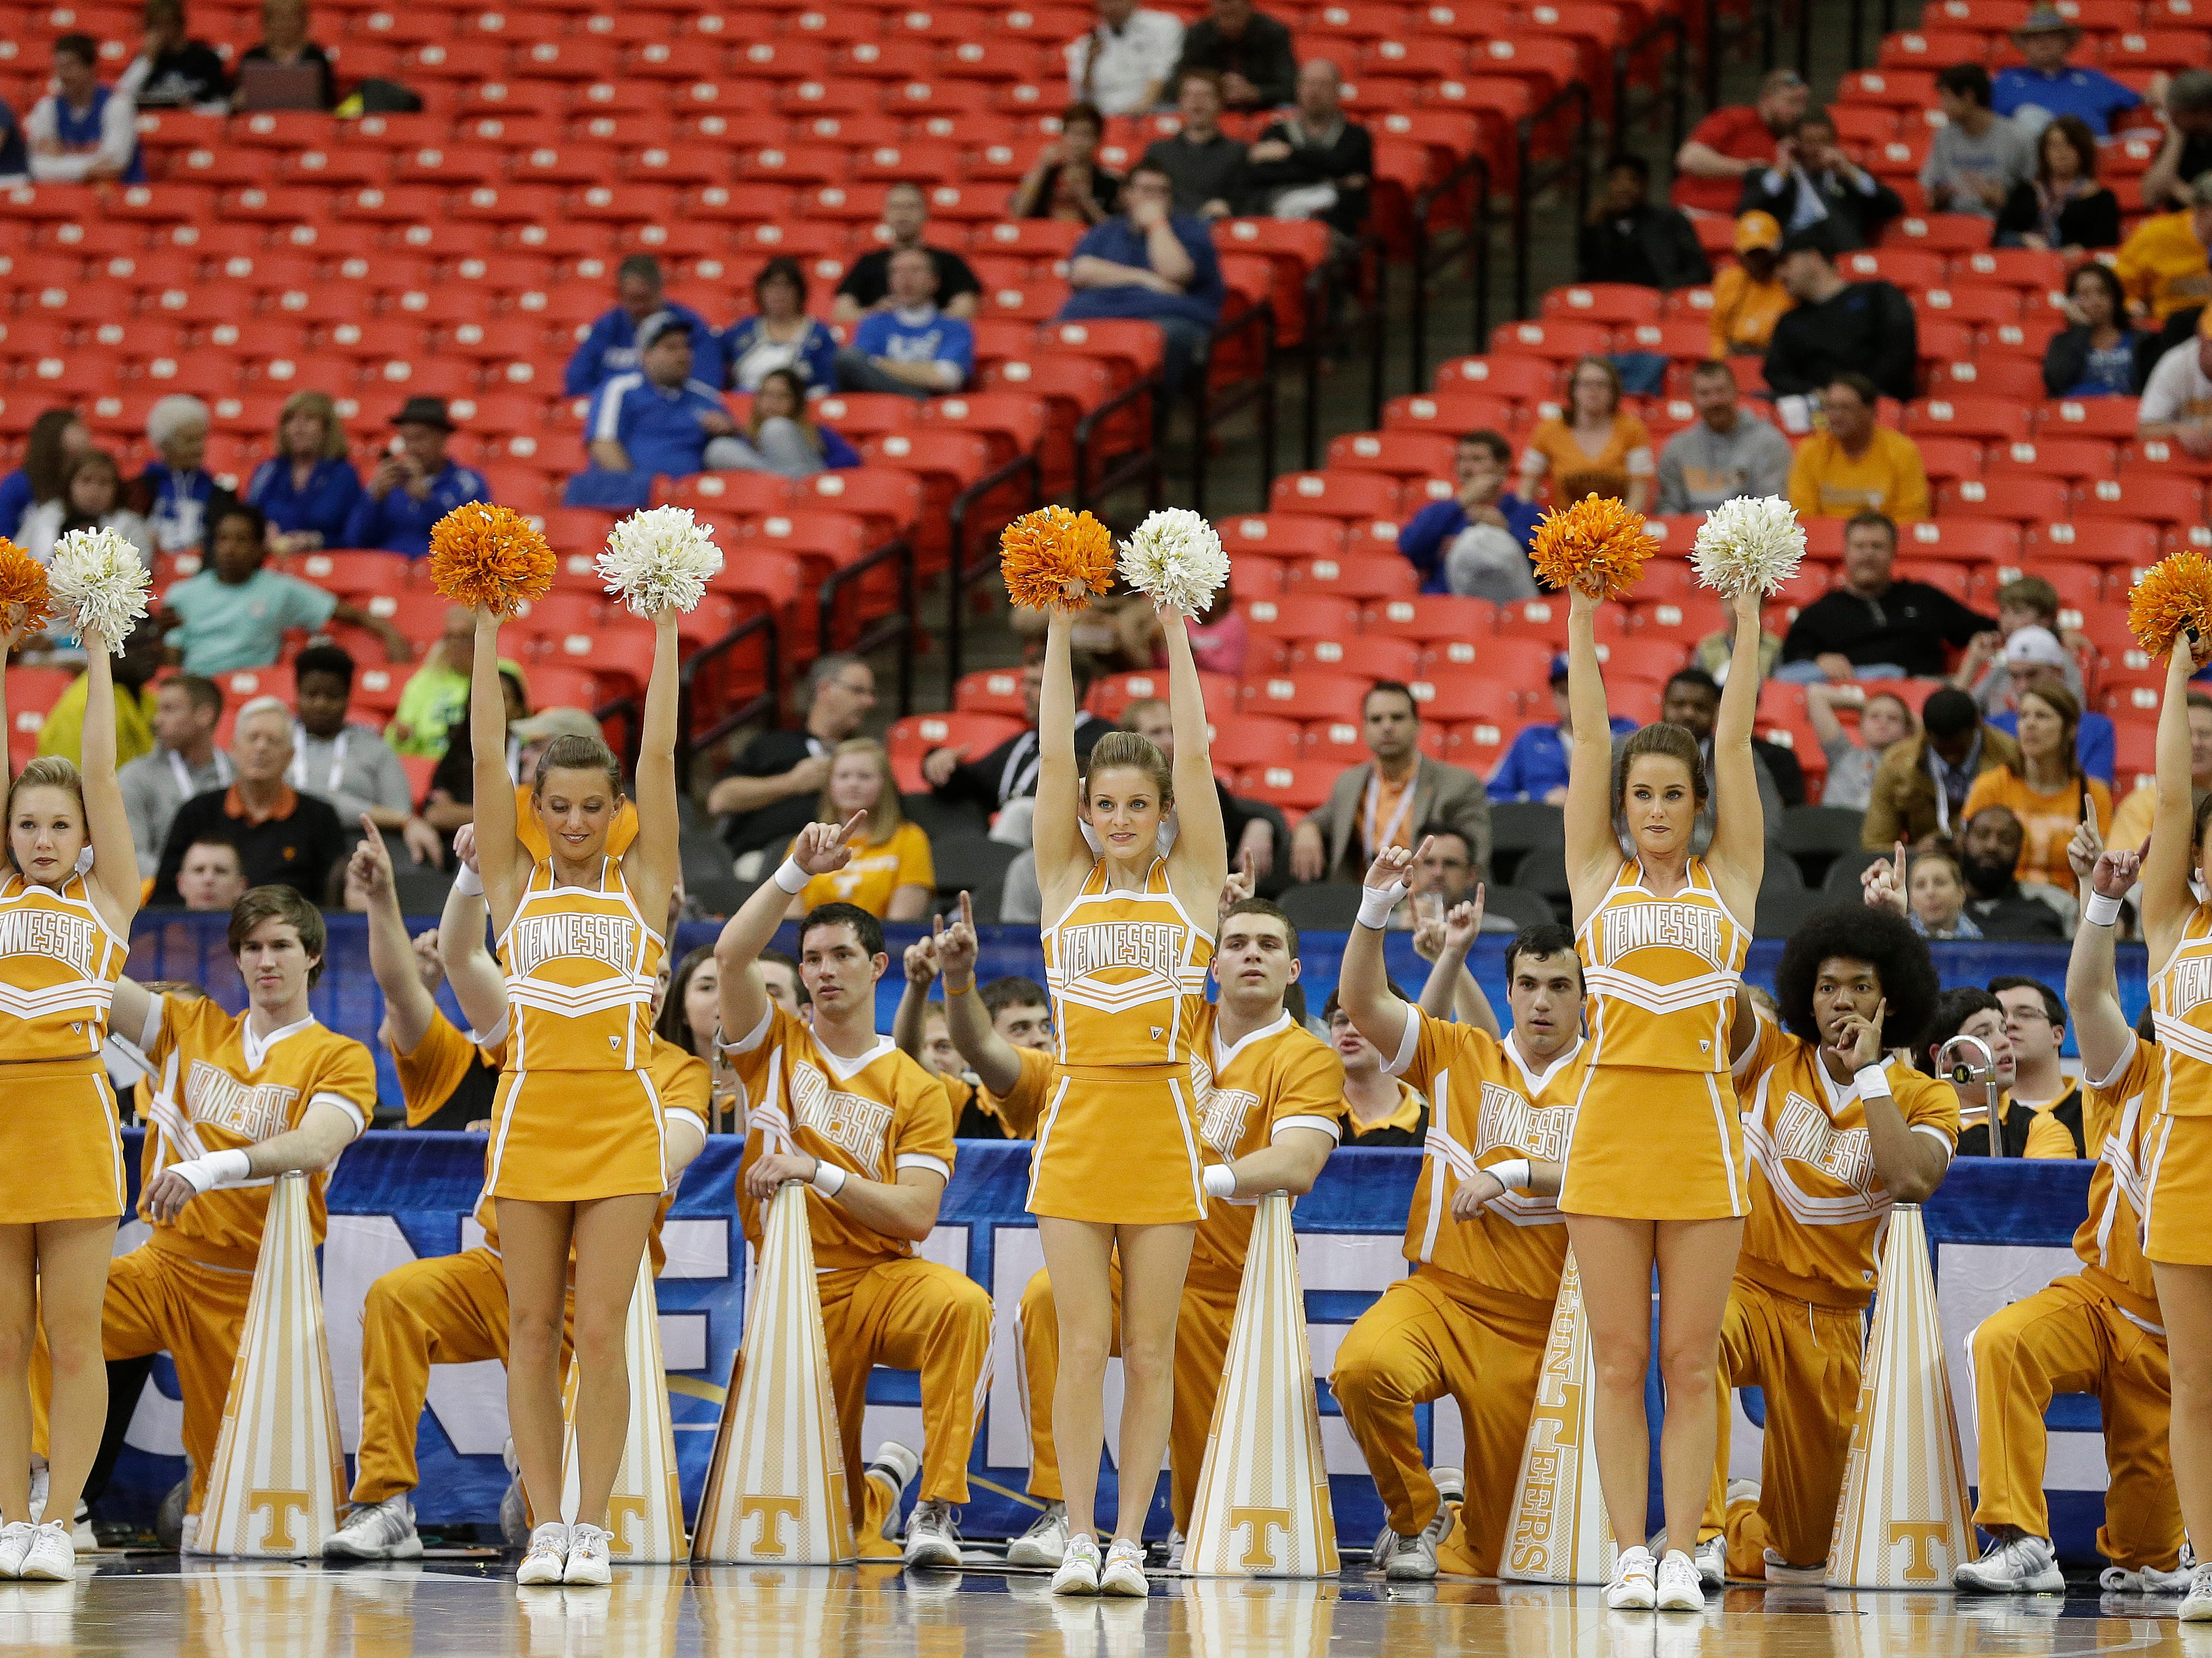 Tennessee cheerleaders perform against South Carolina during the first half of an NCAA college basketball game in the quarterfinal round of the Southeastern Conference men's tournament, Friday, March 14, 2014, in Atlanta. (AP Photo/Steve Helber)